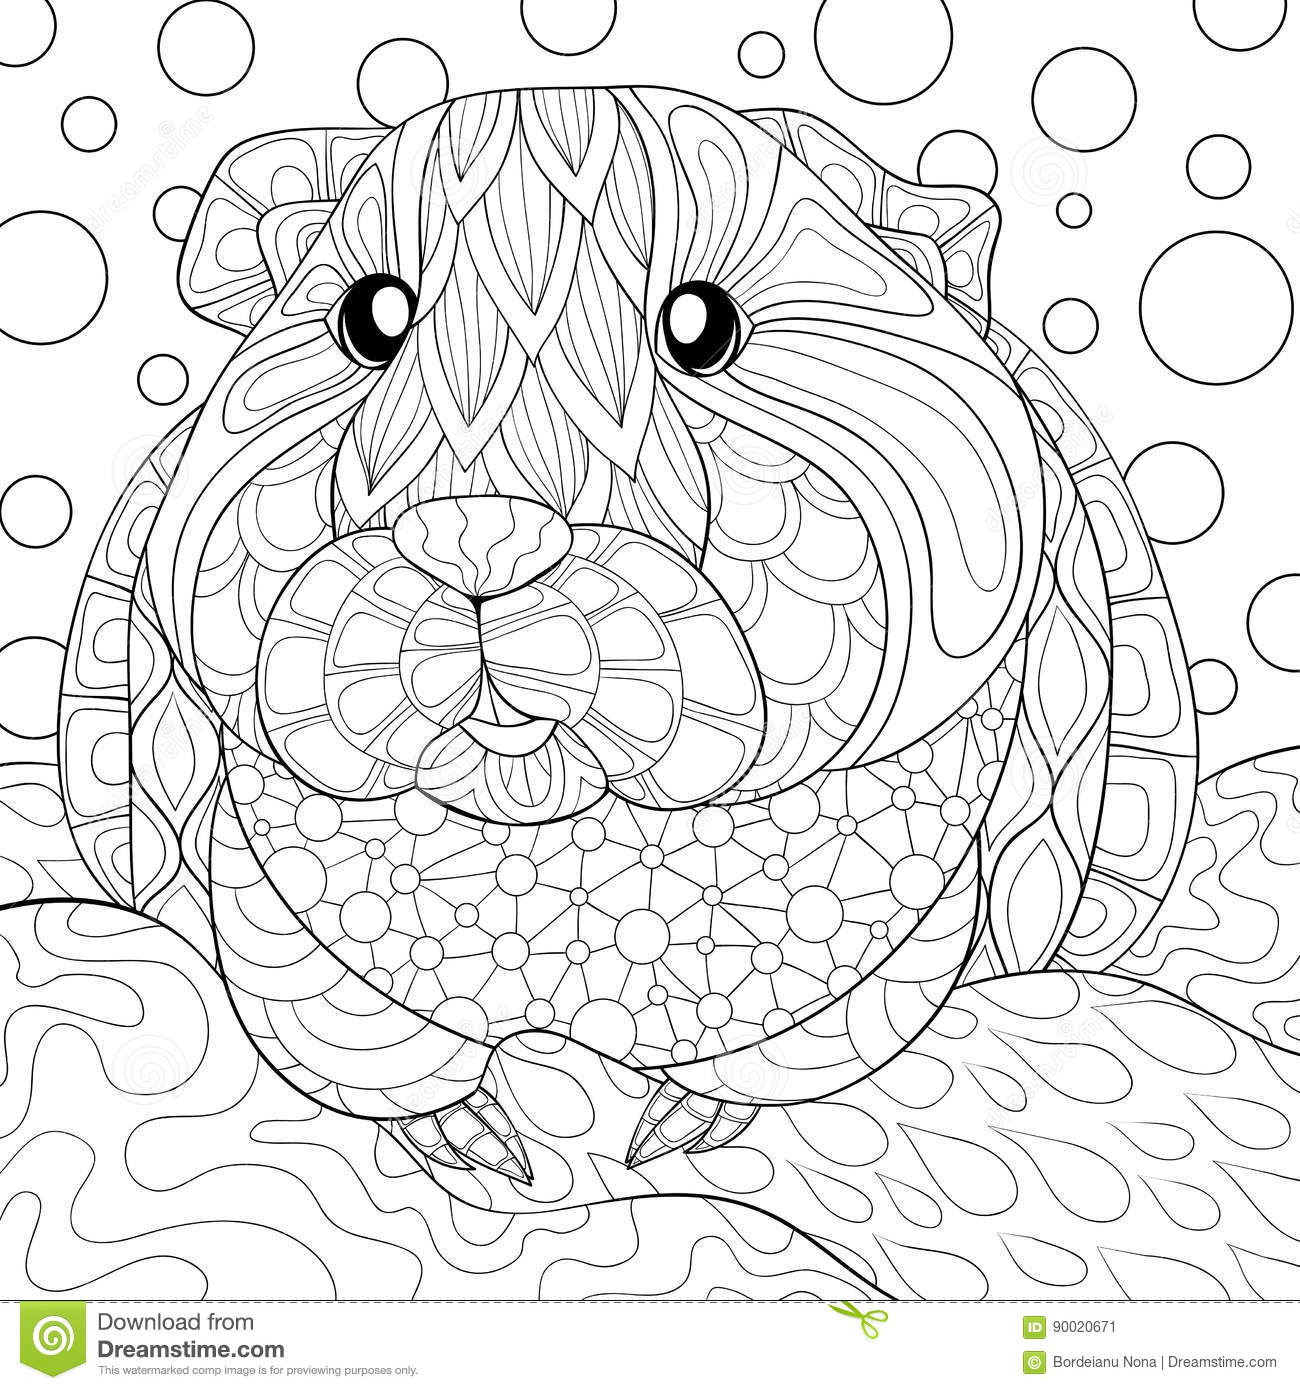 The Best Pig Coloring Pages For Adults